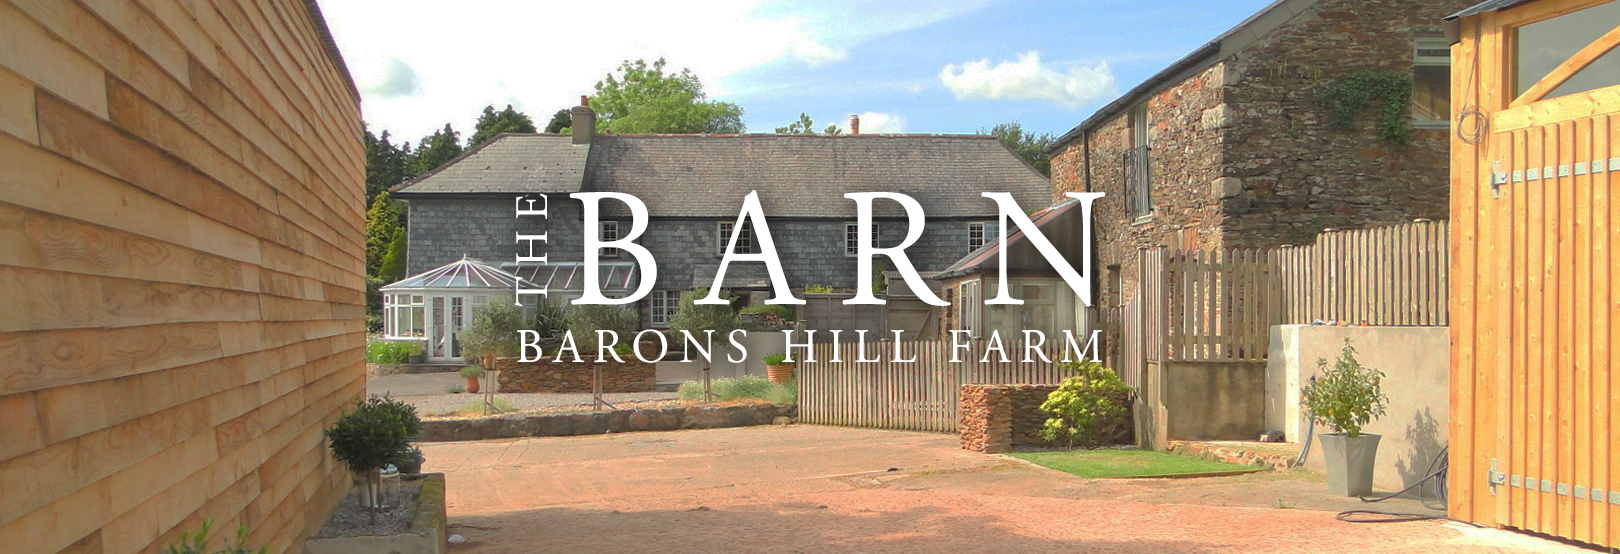 barons-hill-farm-the-barn